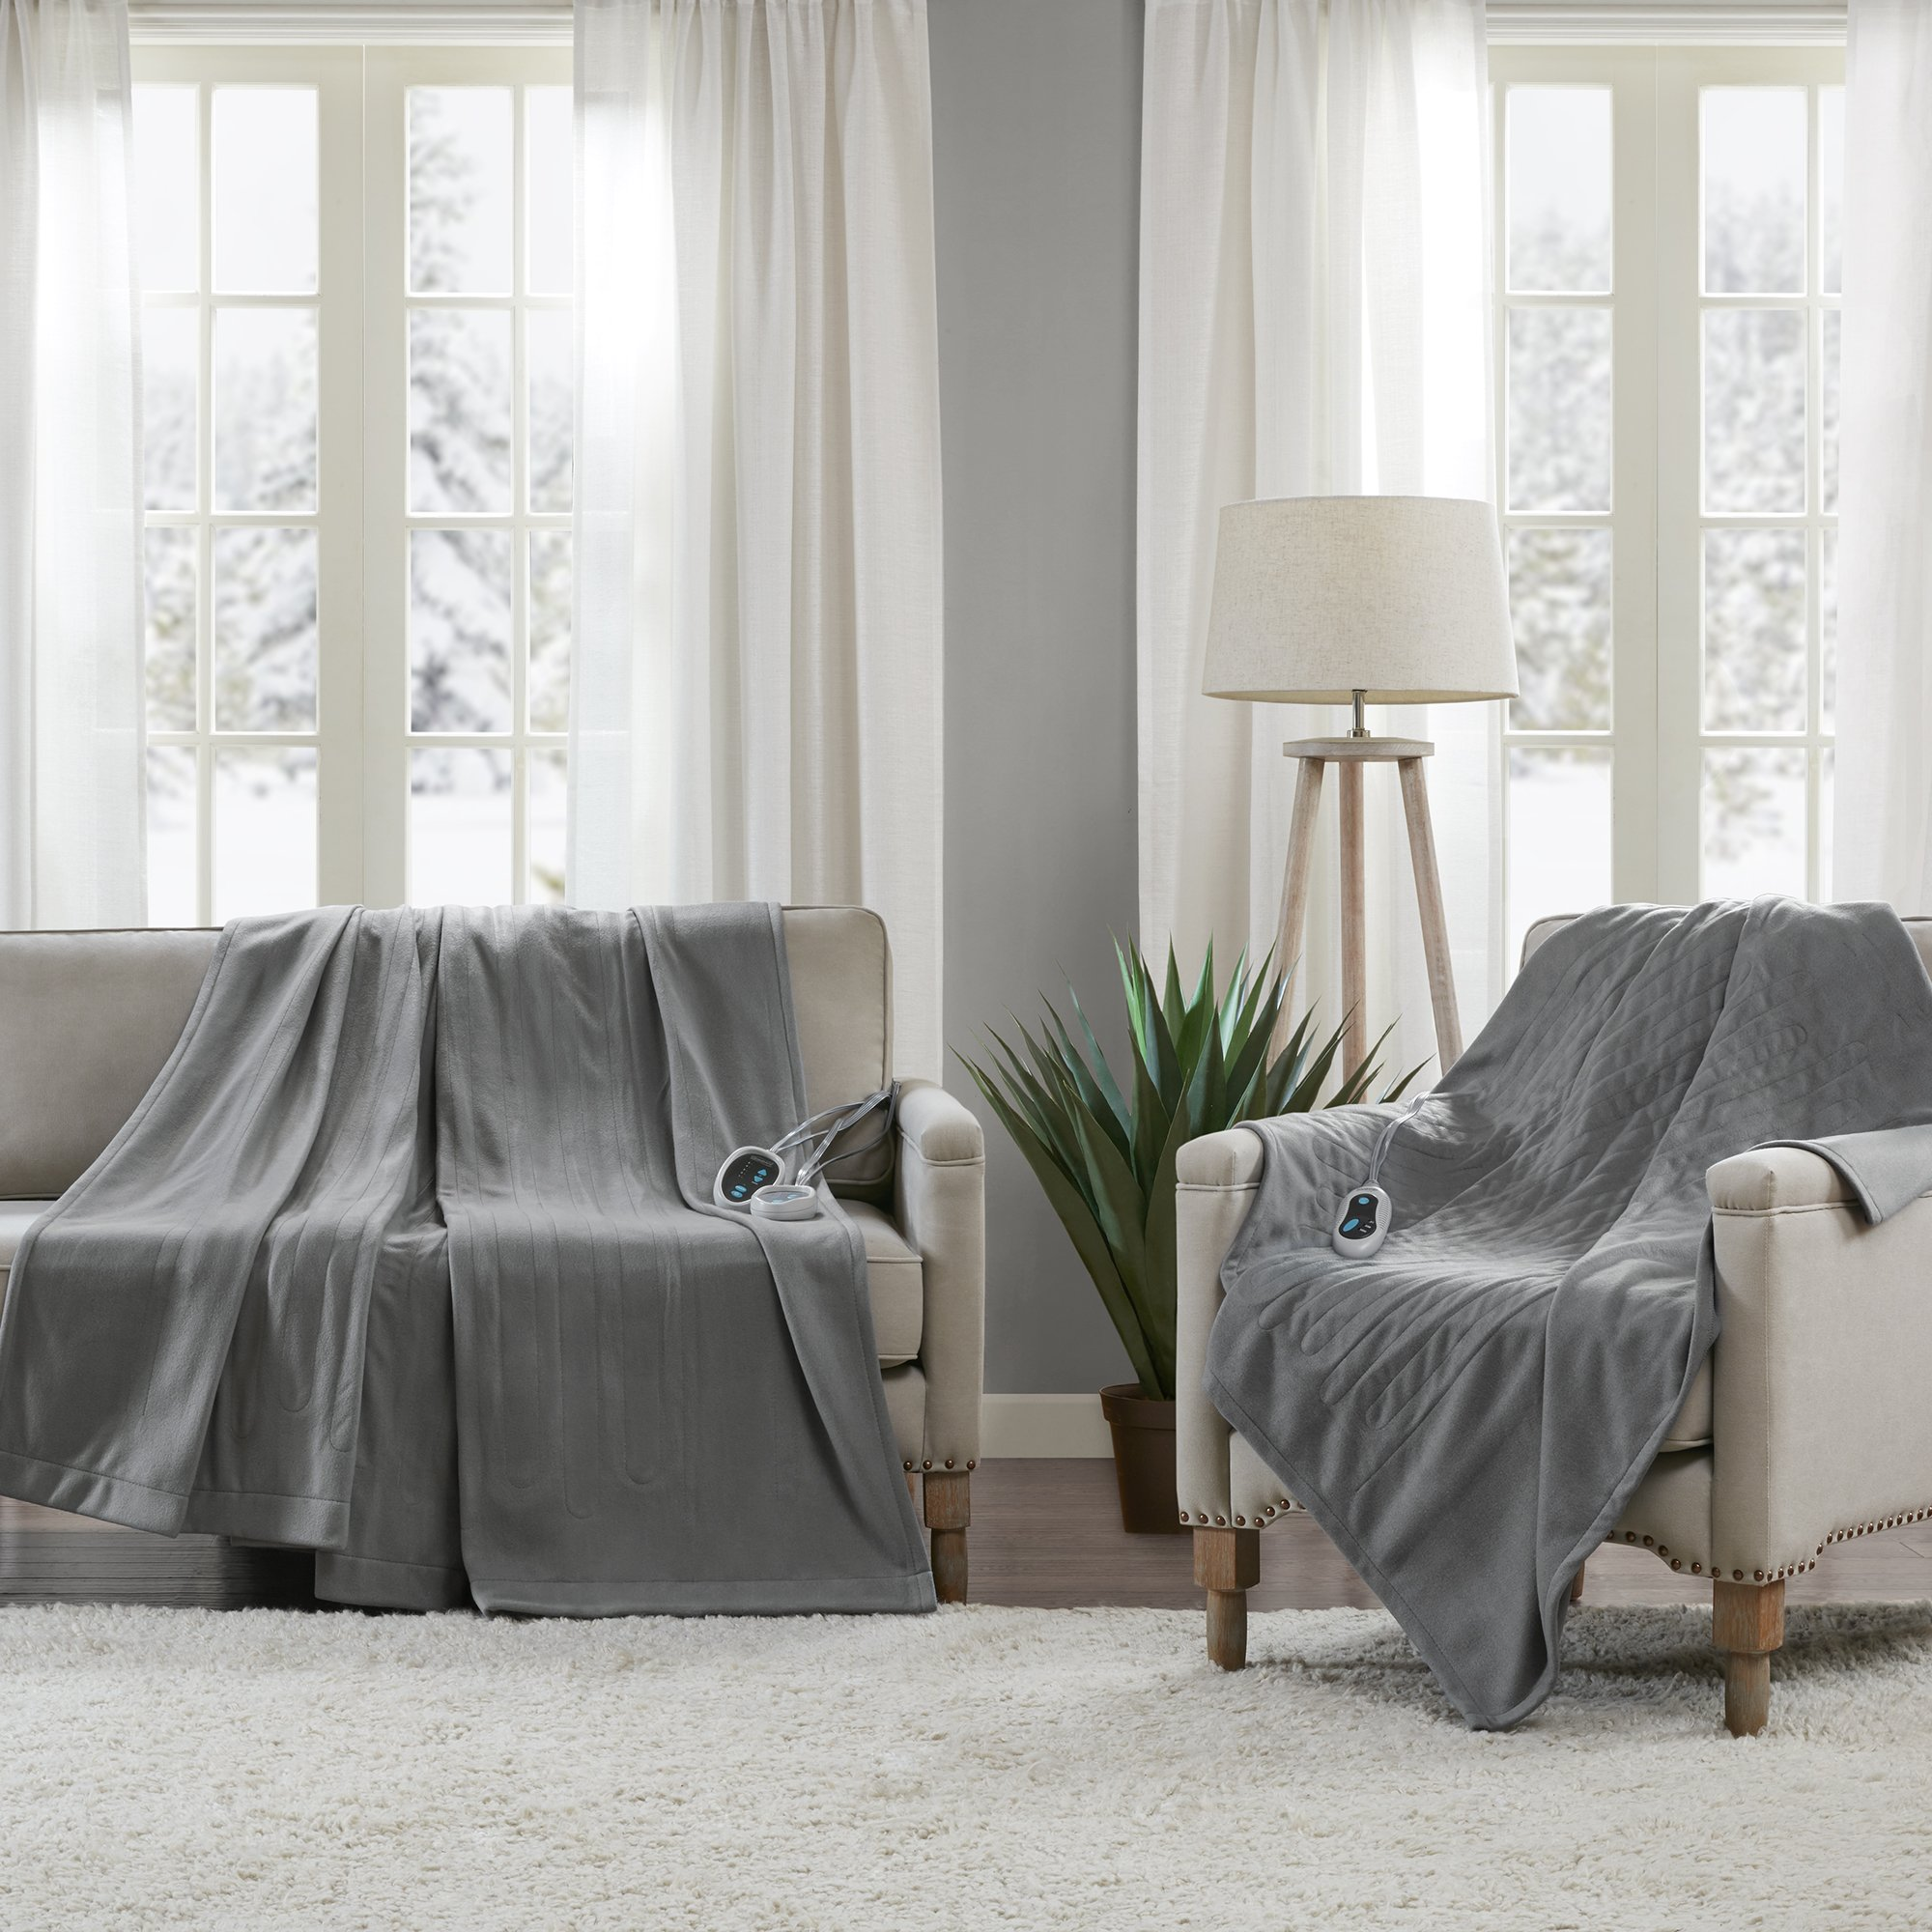 Beautyrest - Heated Fleece Blanket and Throw Combo Set - Grey - King Size Blanket 100'' x 90'' + Throw 50'' x 60'' - With 3 Heat-Regulating Controllers